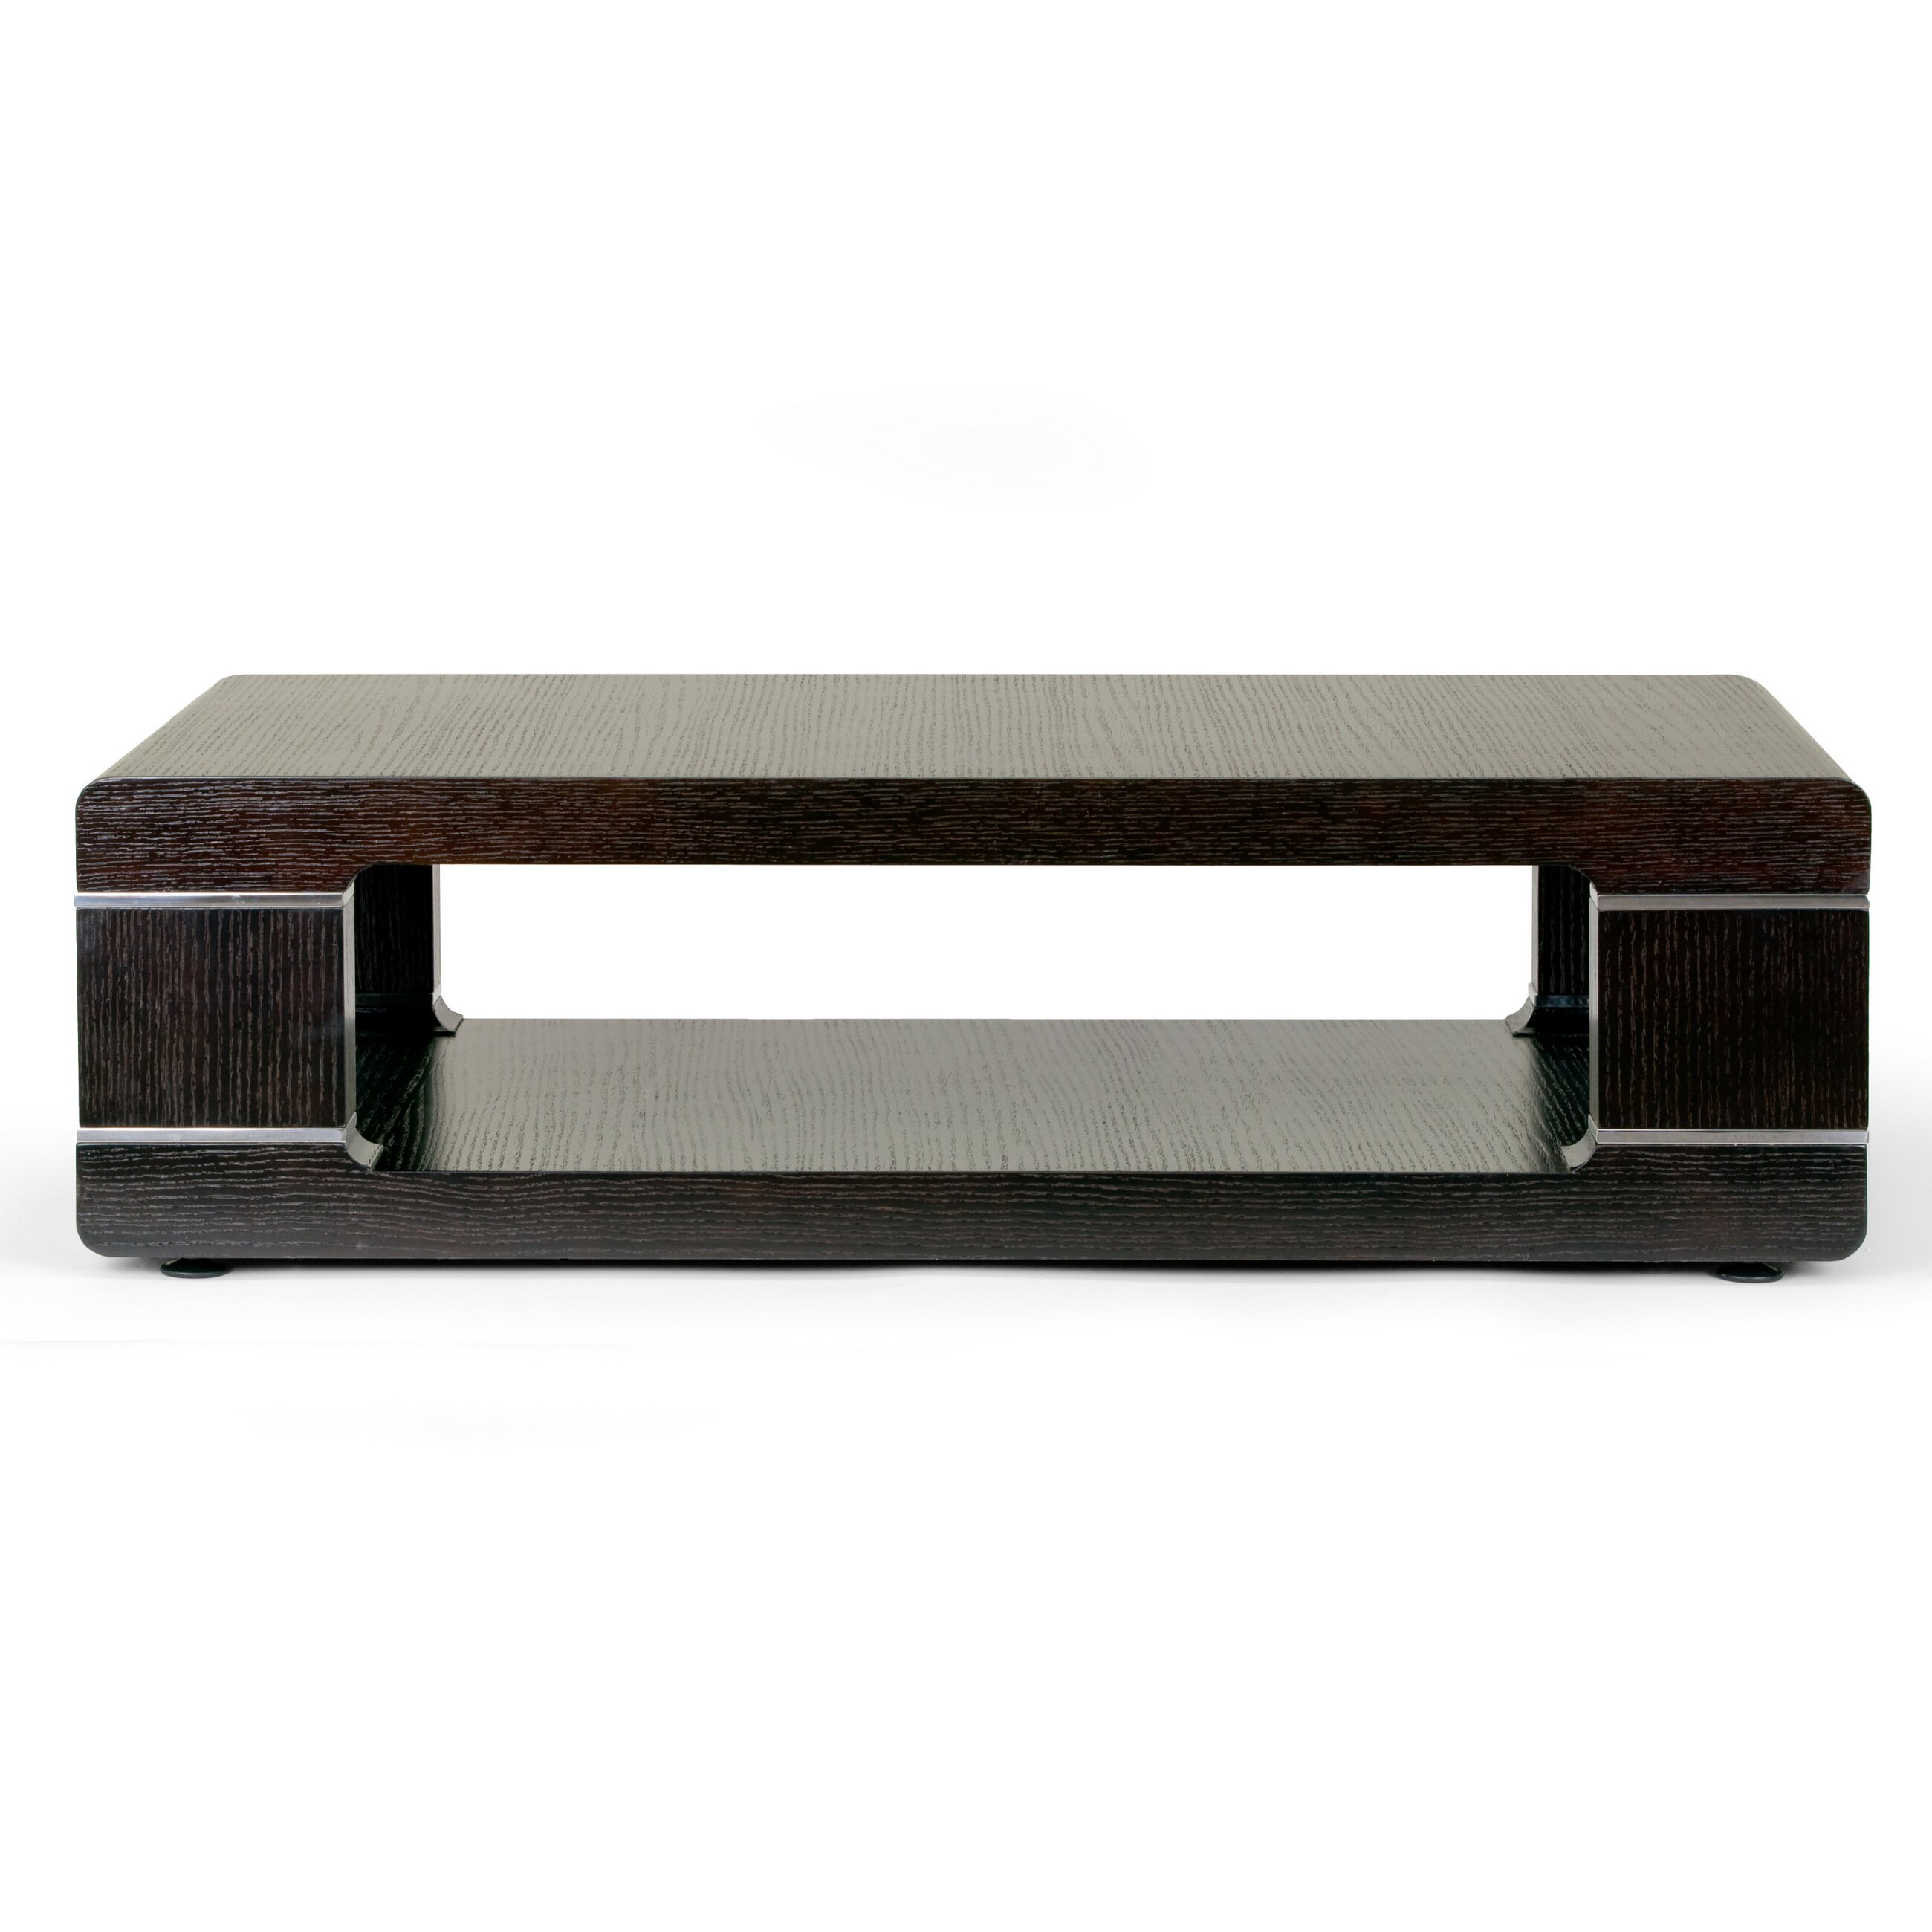 Glamour home decor airlie modern coffee table wayfair Coffee table accessories